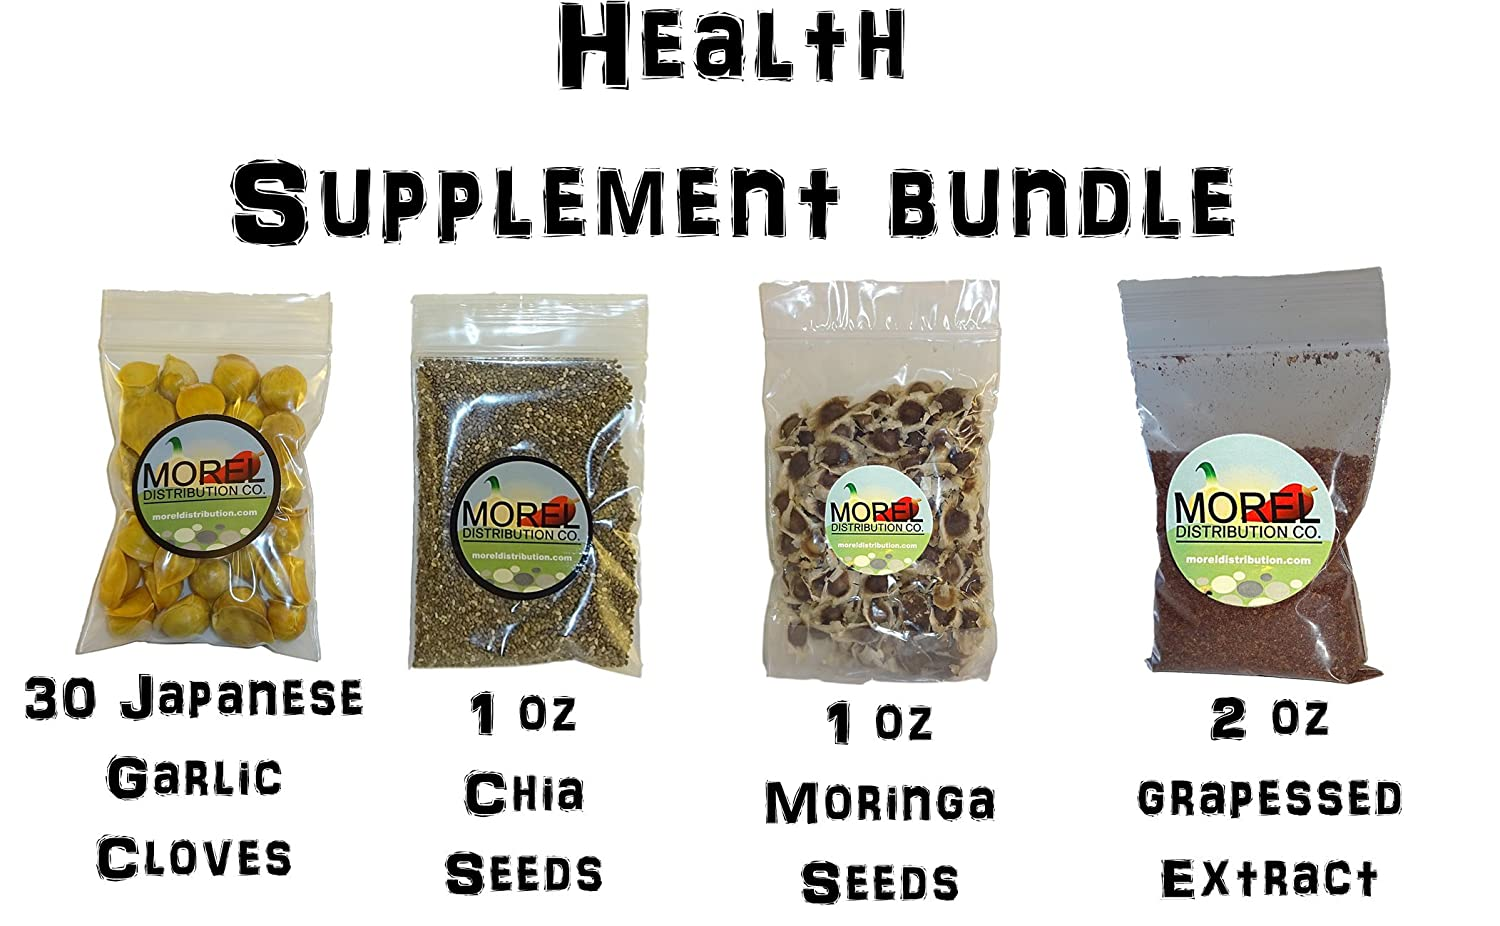 Amazon.com: Health Supplement Bundle! (Japanese Garlic+Chia+Moringa+GRAPESEED Extract): Health & Personal Care